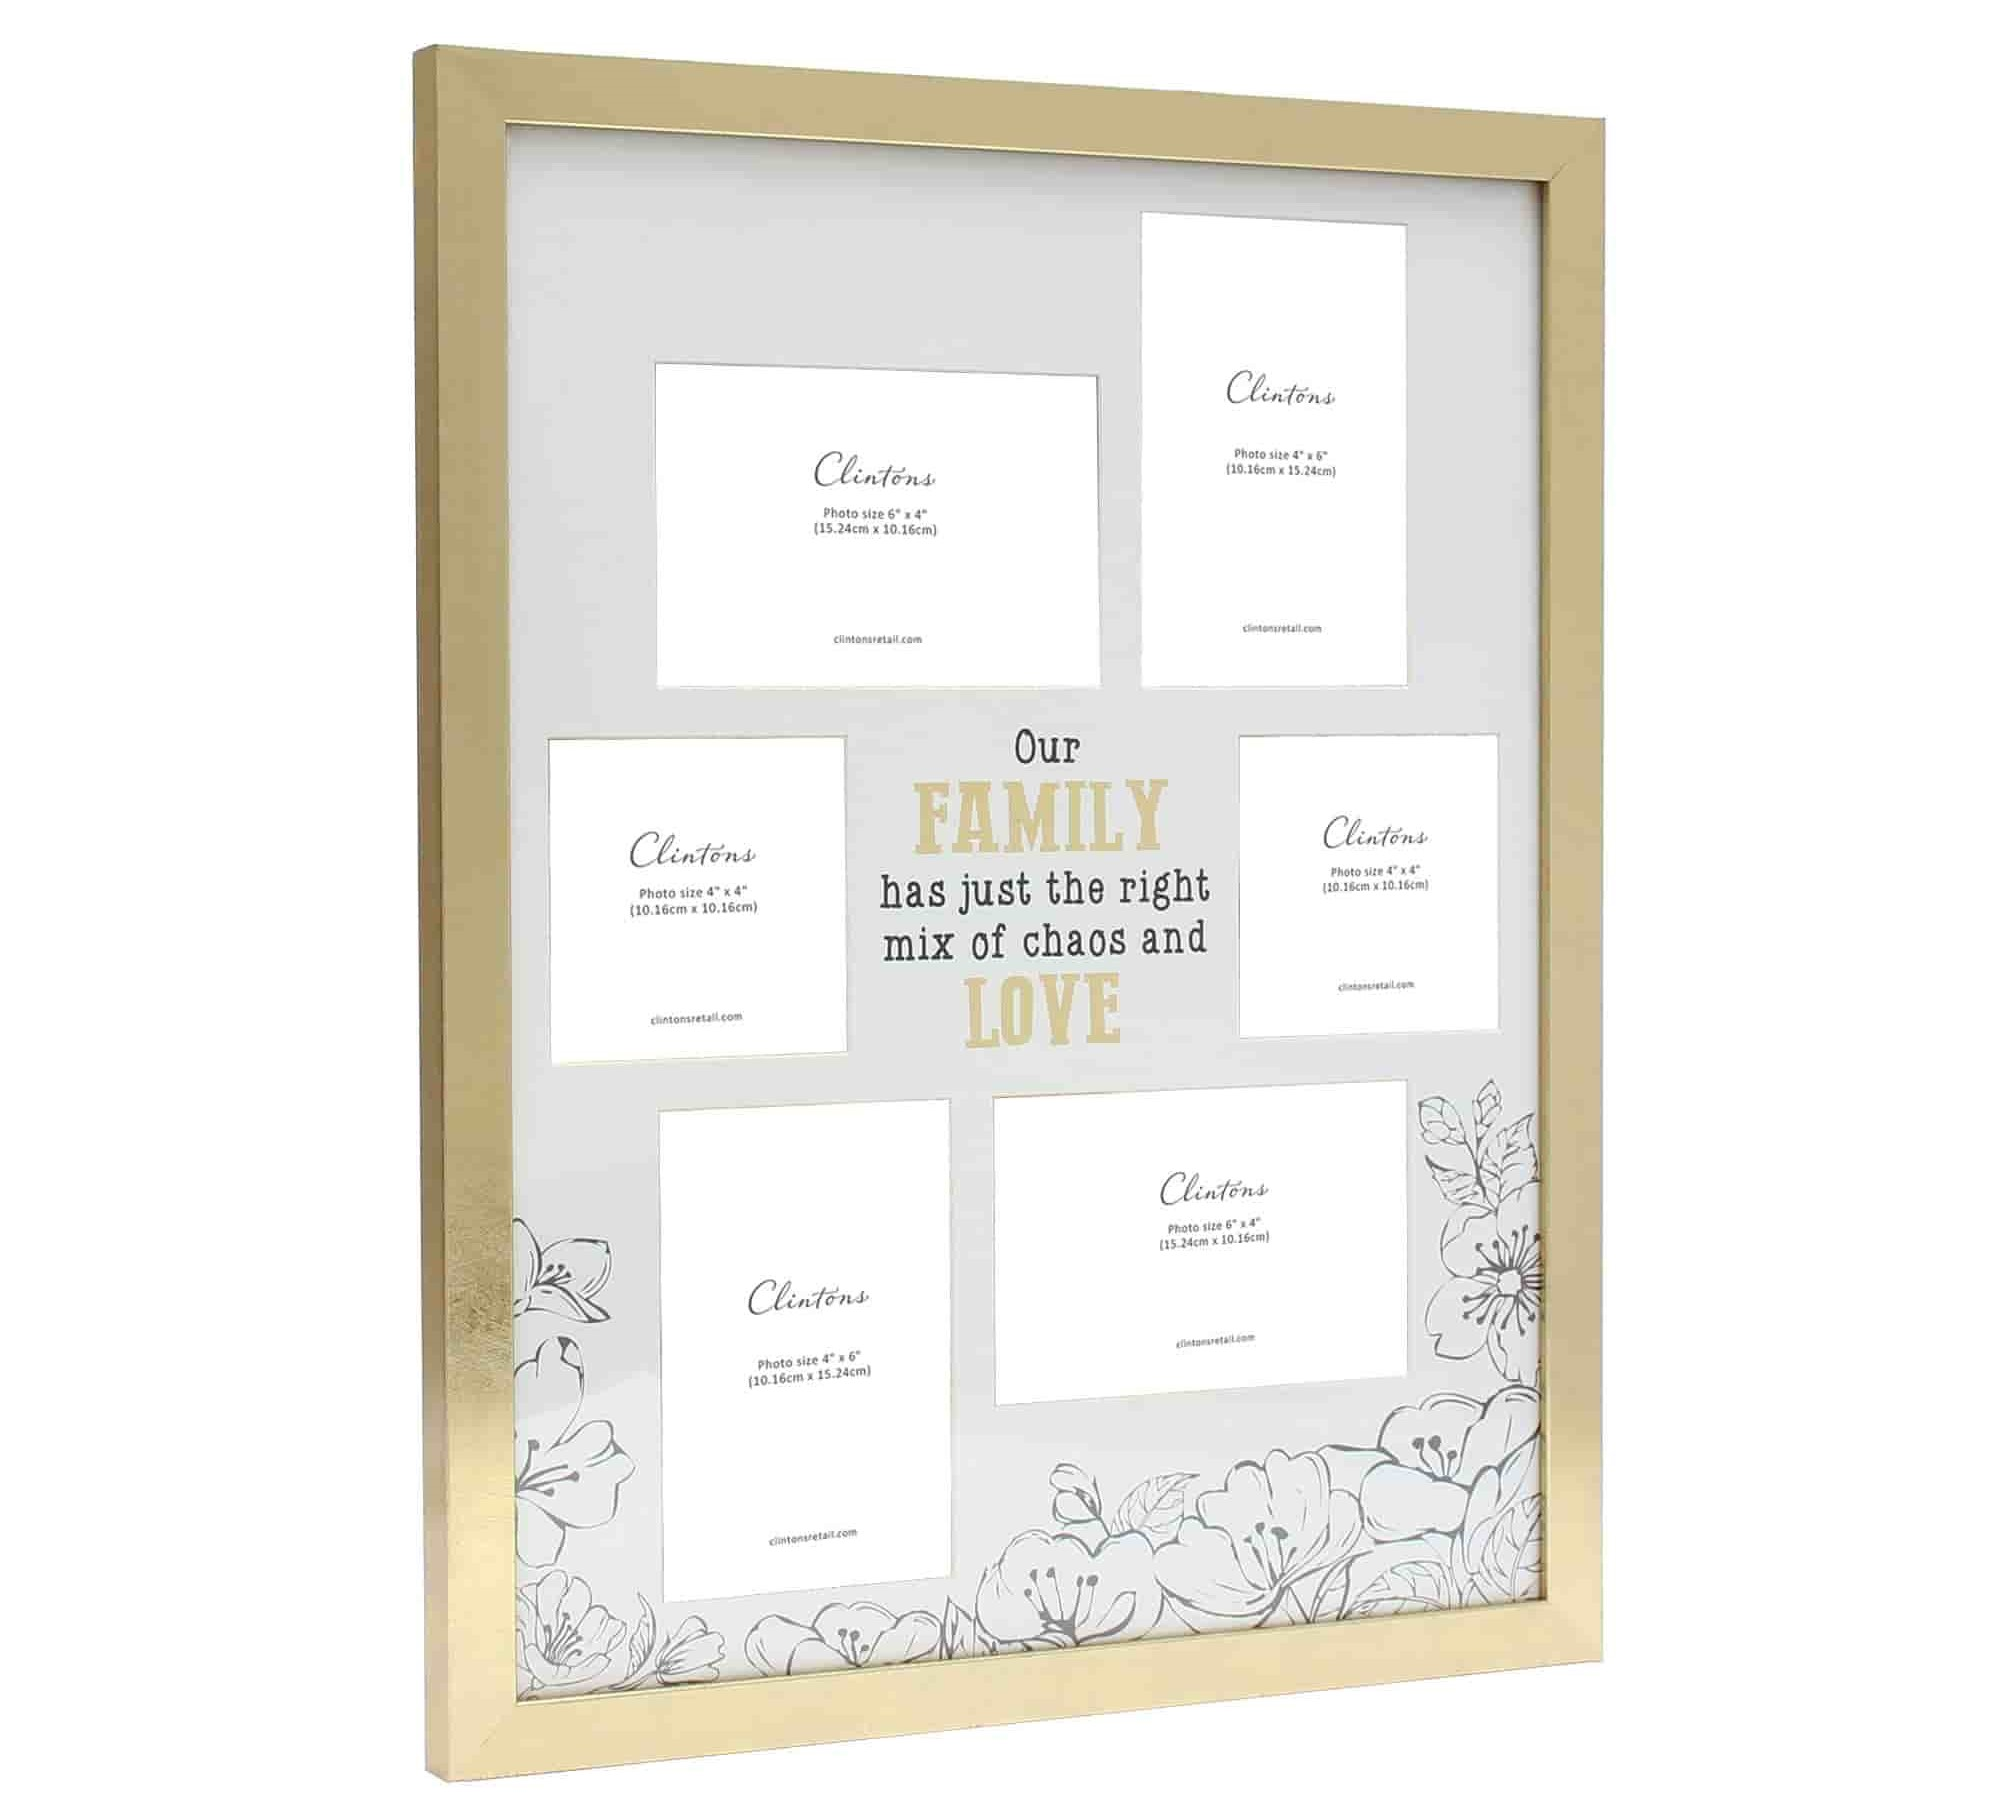 Clintons' collage frame family 6 picture display